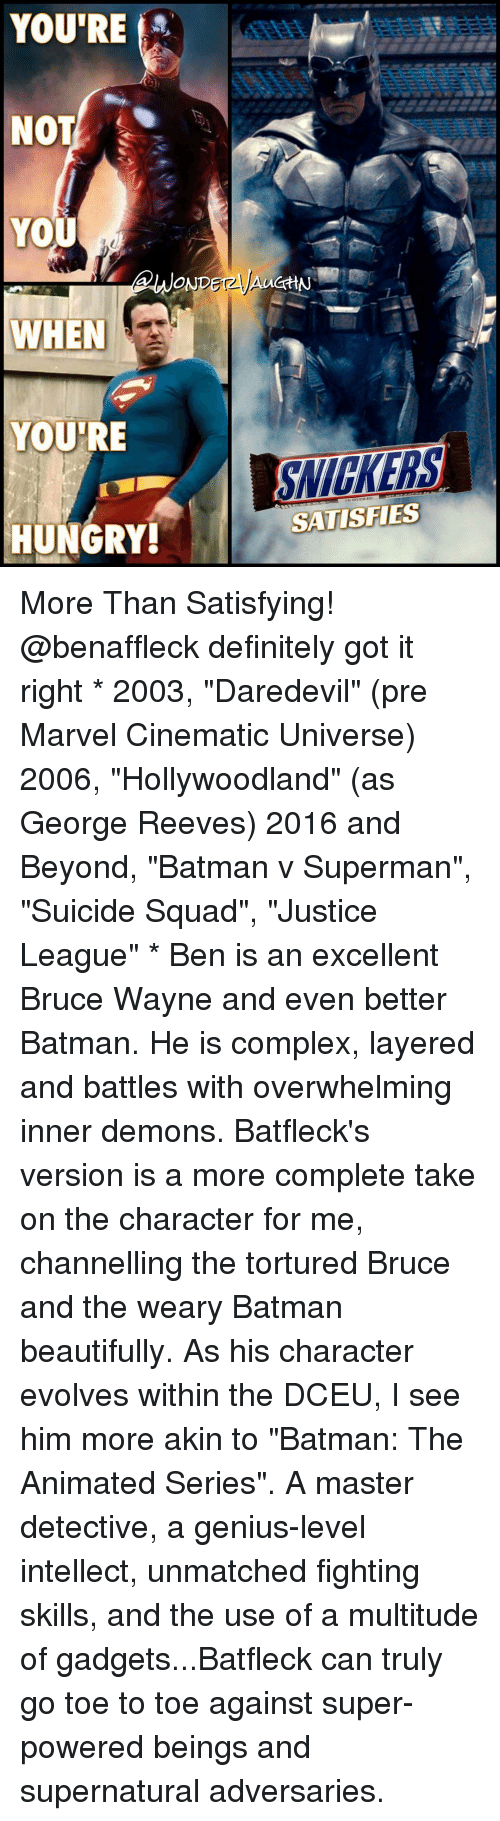 "inner demons: YOU'RE  NOT  YOU  WHEN  YOURE  HUNGRY!  GHN  SATISFIES More Than Satisfying! @benaffleck definitely got it right * 2003, ""Daredevil"" (pre Marvel Cinematic Universe) 2006, ""Hollywoodland"" (as George Reeves) 2016 and Beyond, ""Batman v Superman"", ""Suicide Squad"", ""Justice League"" * Ben is an excellent Bruce Wayne and even better Batman. He is complex, layered and battles with overwhelming inner demons. Batfleck's version is a more complete take on the character for me, channelling the tortured Bruce and the weary Batman beautifully. As his character evolves within the DCEU, I see him more akin to ""Batman: The Animated Series"". A master detective, a genius-level intellect, unmatched fighting skills, and the use of a multitude of gadgets...Batfleck can truly go toe to toe against super-powered beings and supernatural adversaries."